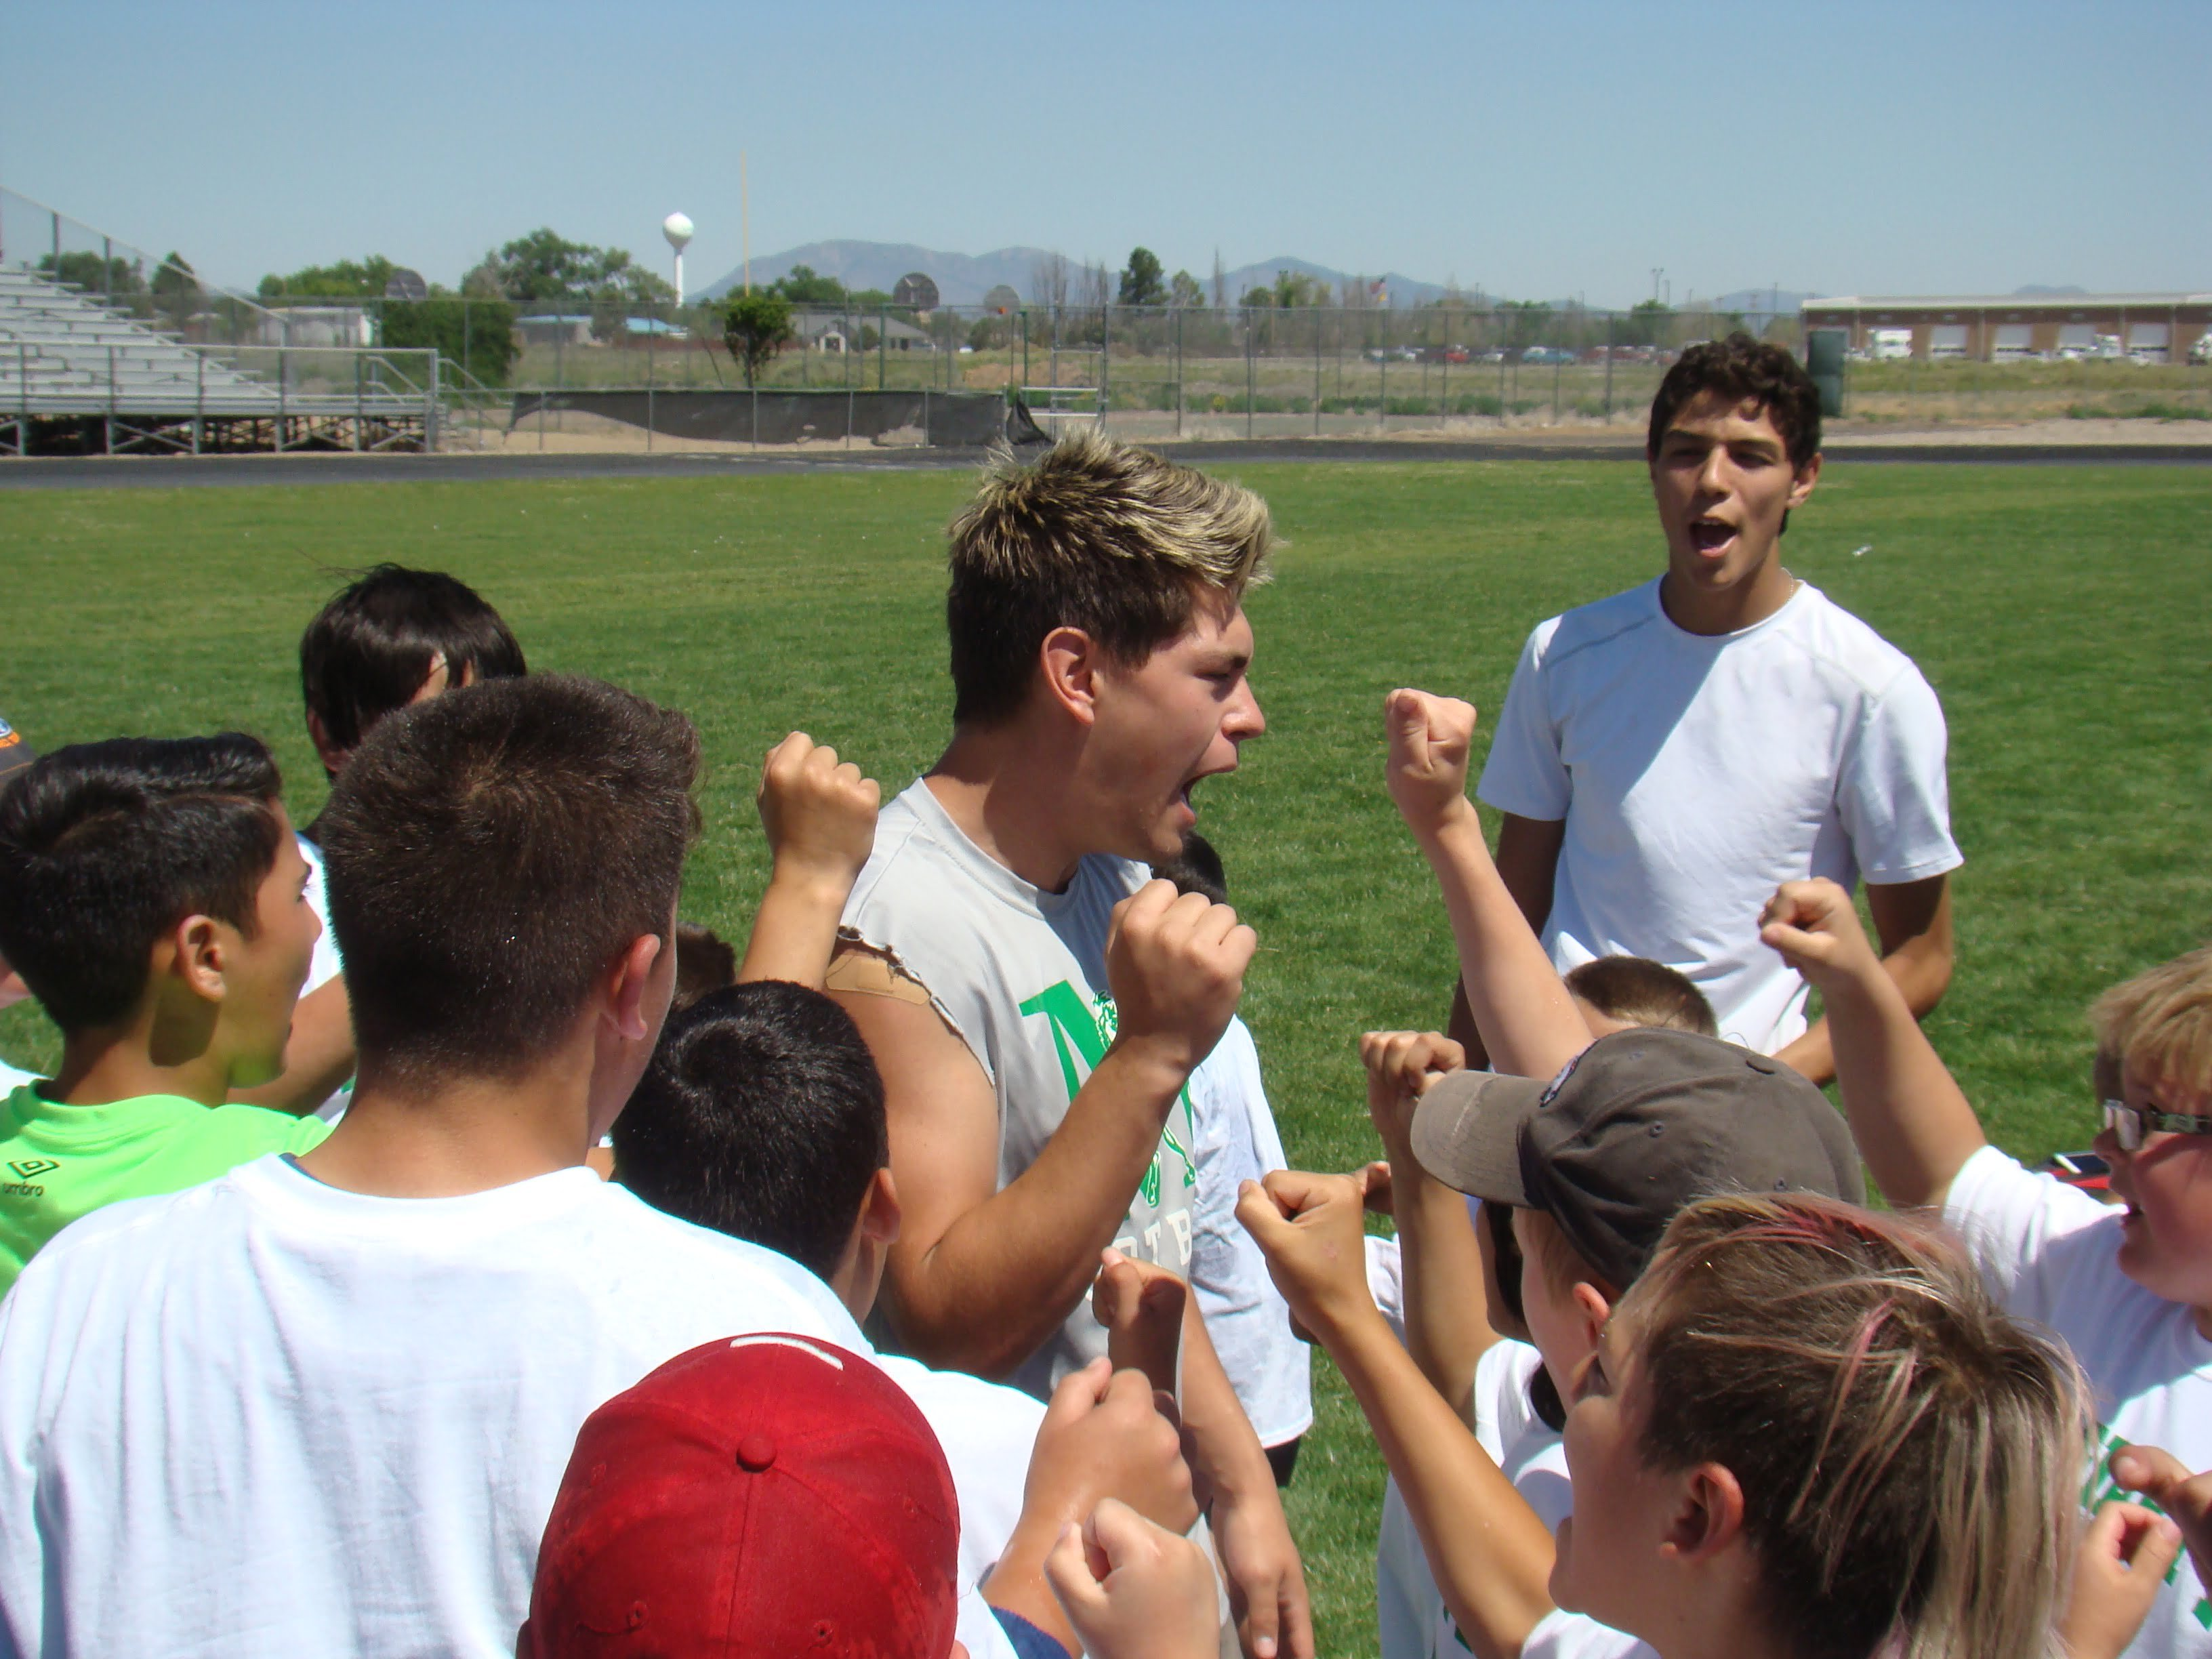 Pintos football camp focuses on fun, fundamentals and 'the gauntlet'